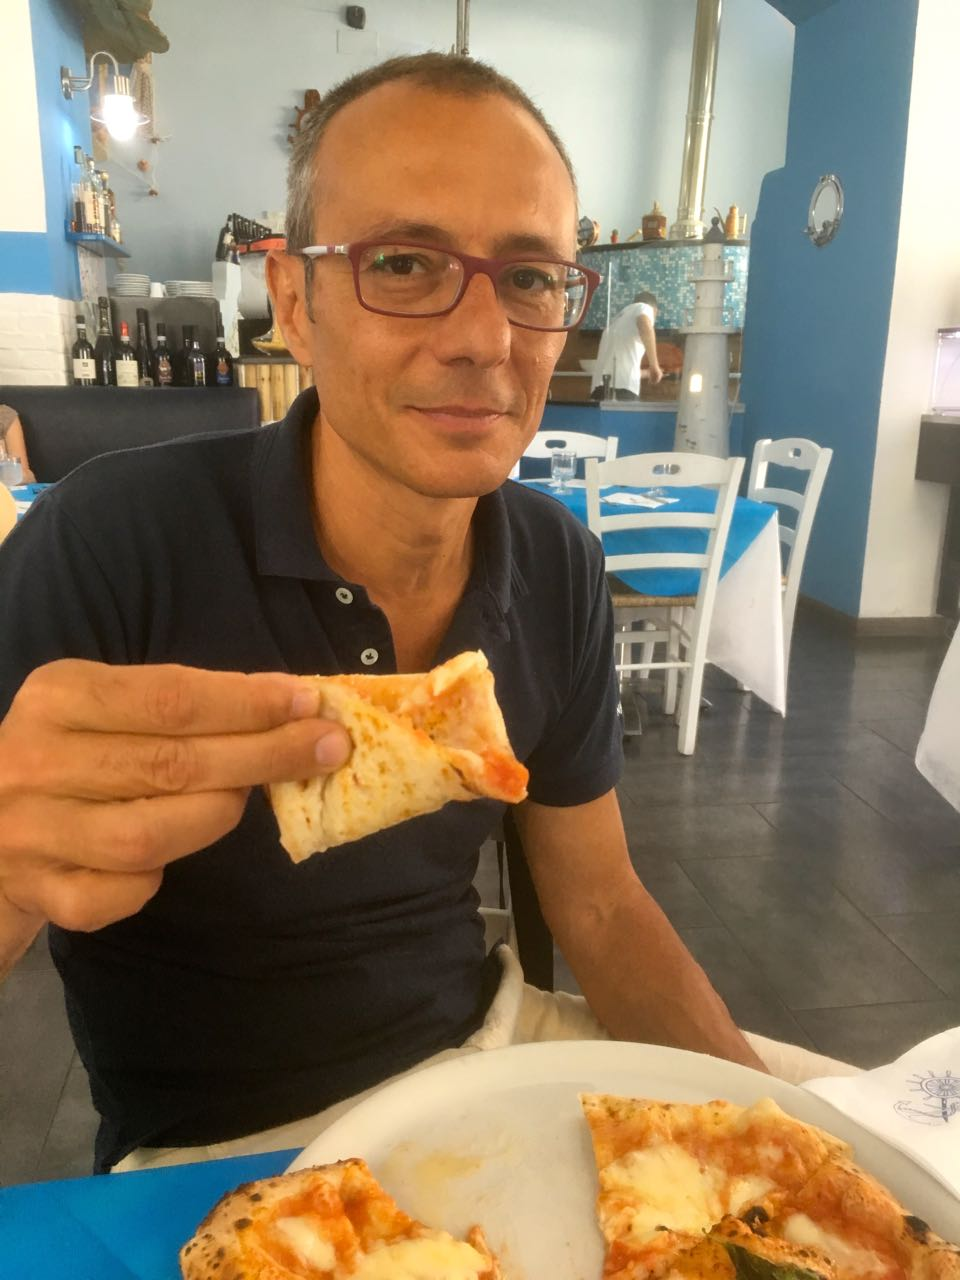 When in Naples – EAT!